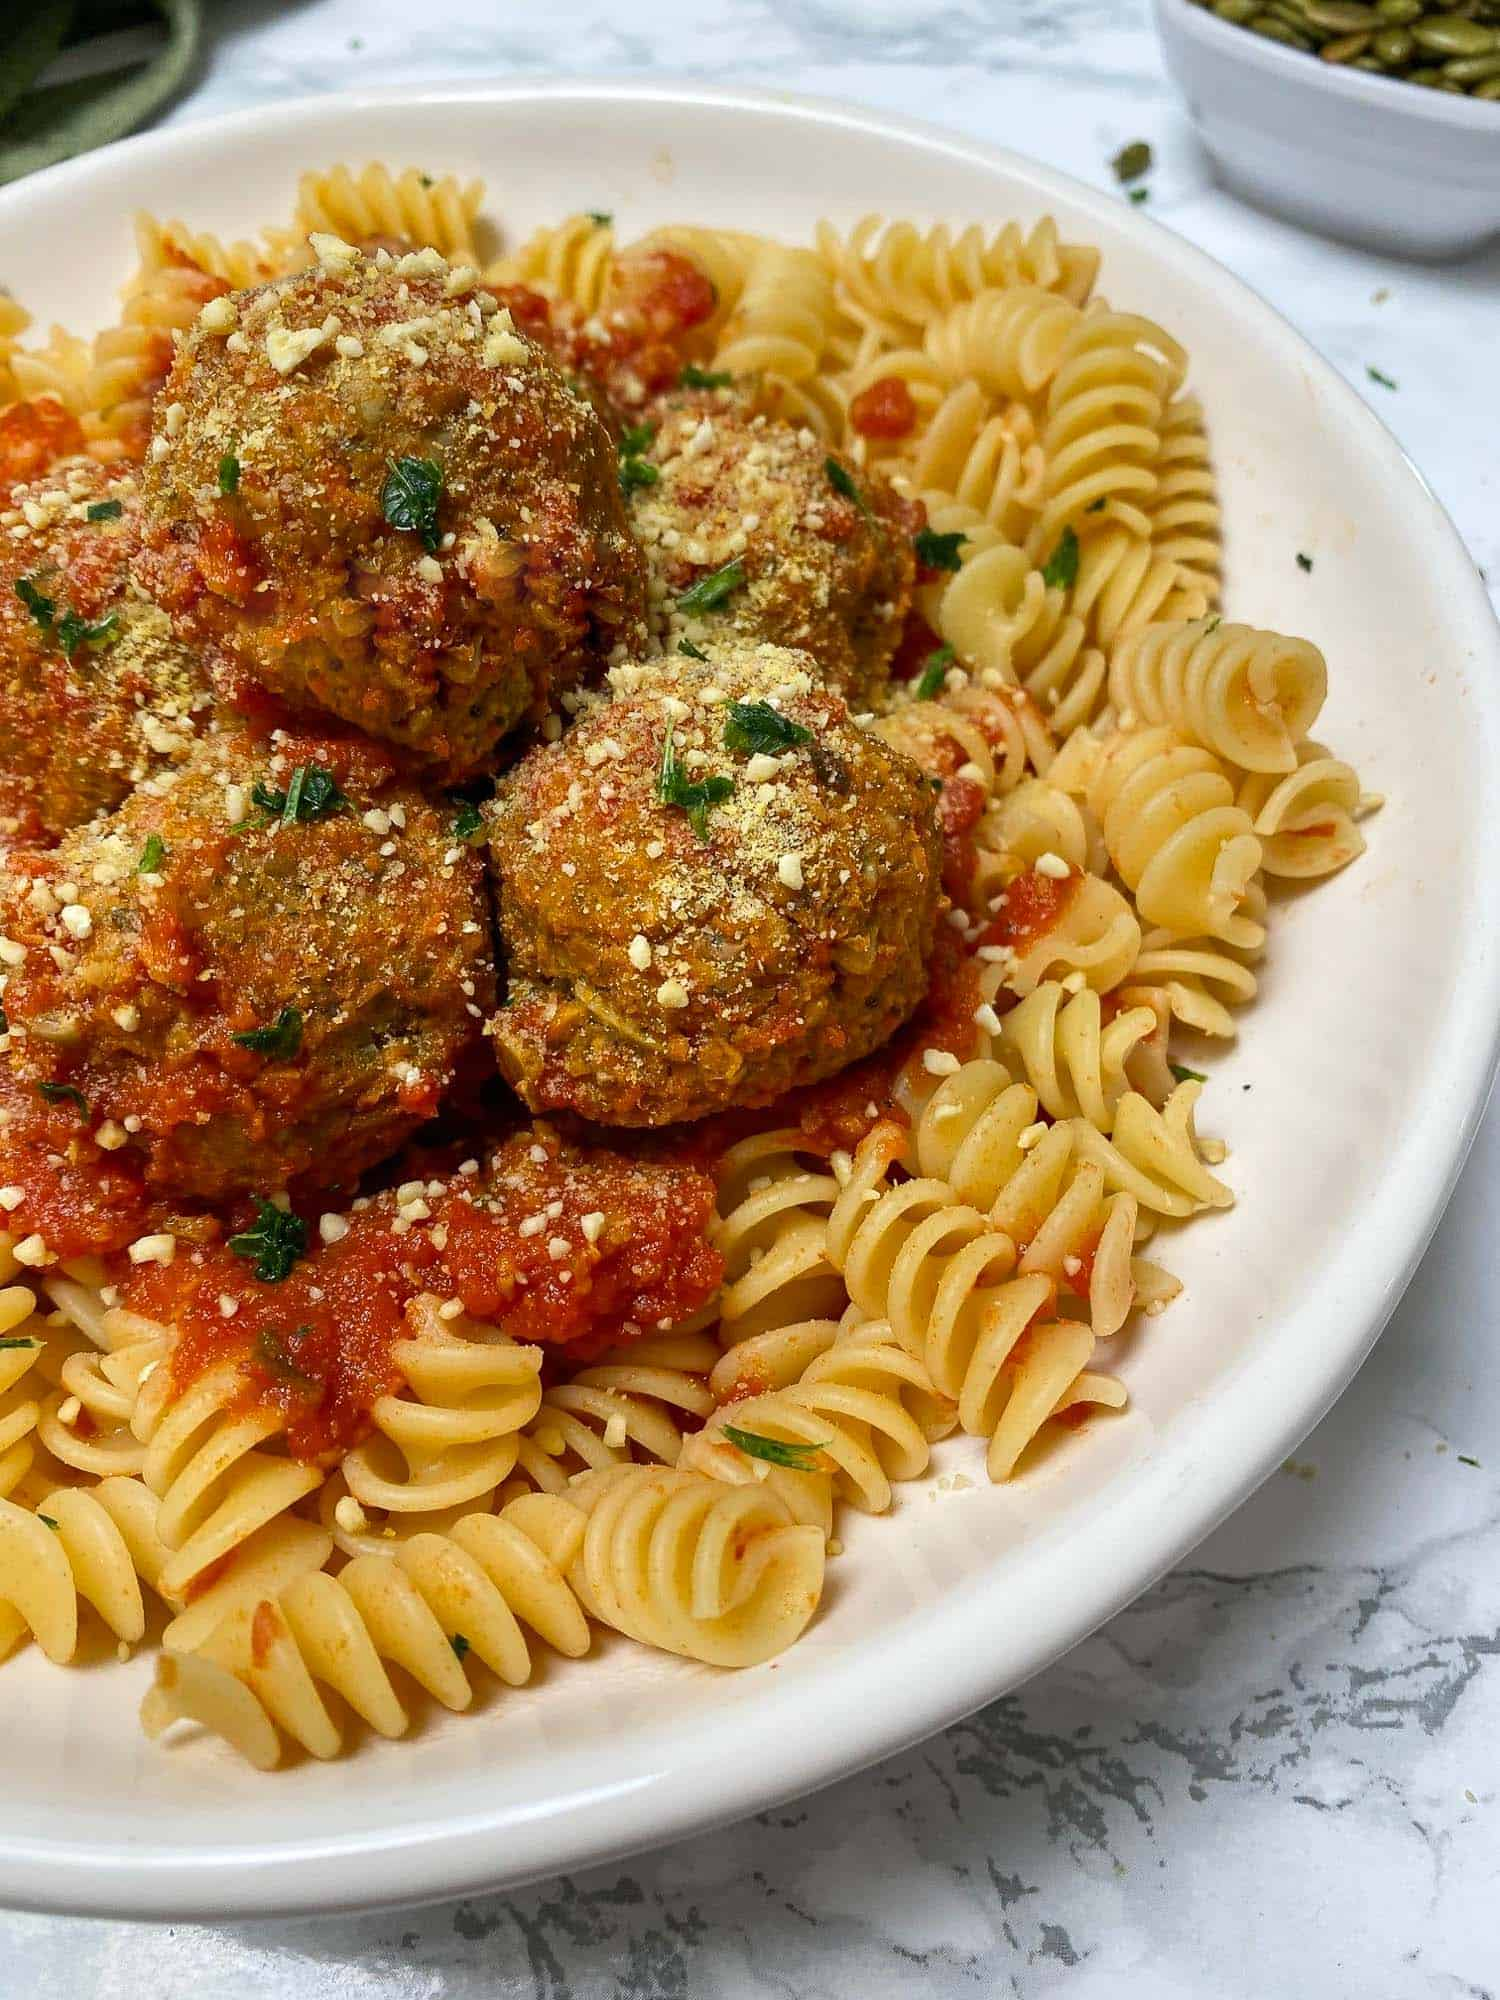 lentil meatballs over bed of rotini pasta with tomato sauce